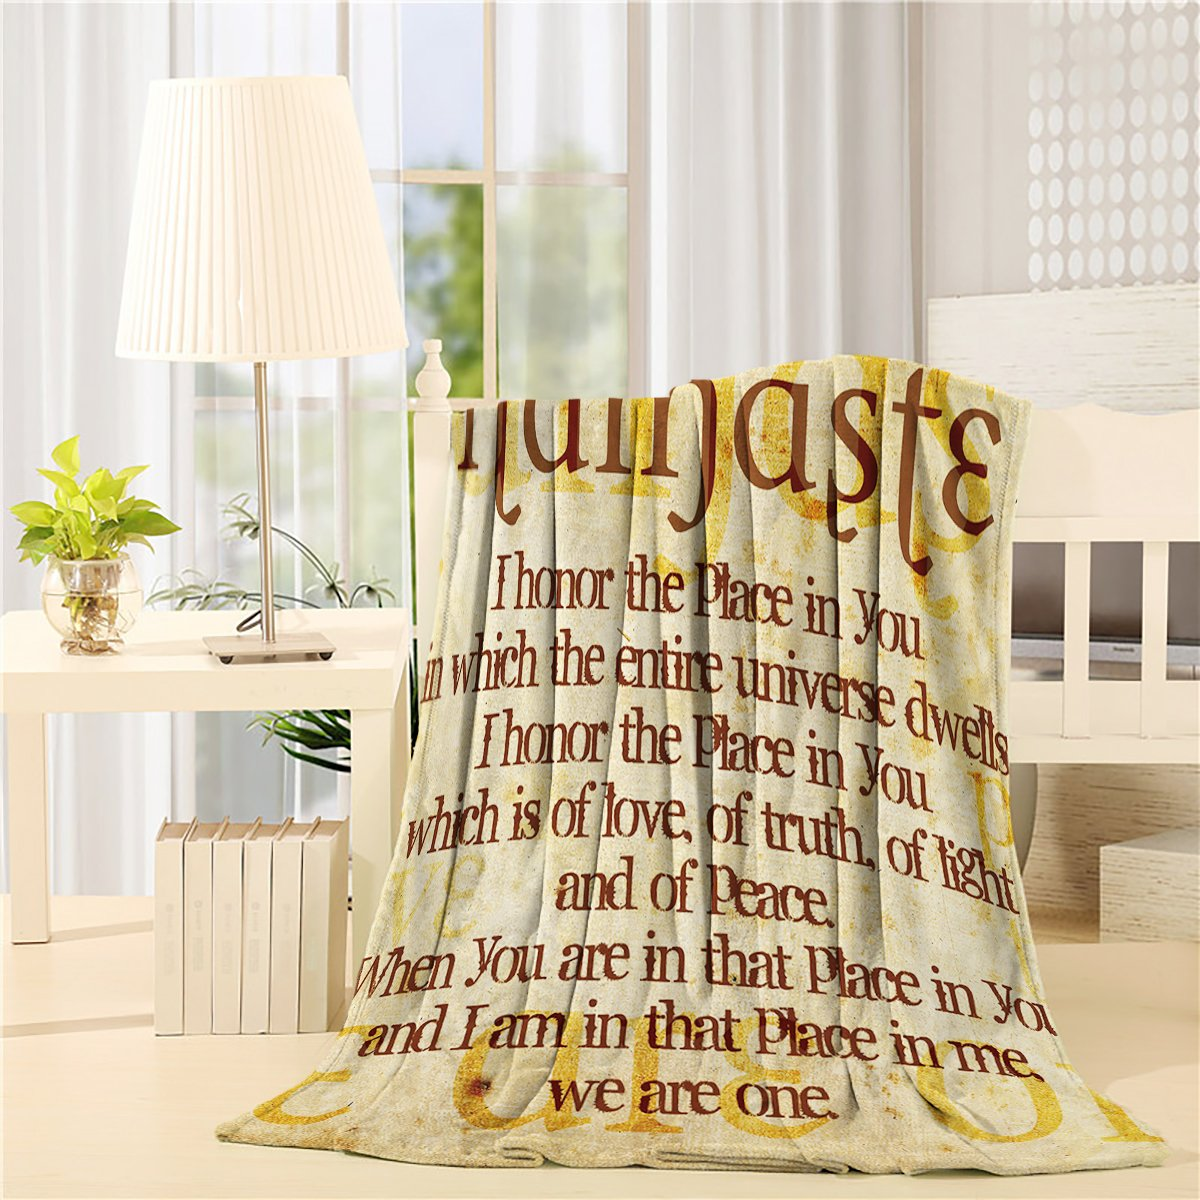 Flannel Fleece Throw Blankets Bed/Couch Soft Warm Fuzzy Plush Microfiber All-Season Lightweight Sofa Chair Throws (Throw 50x60inch) Namaste Quote Christian Faith